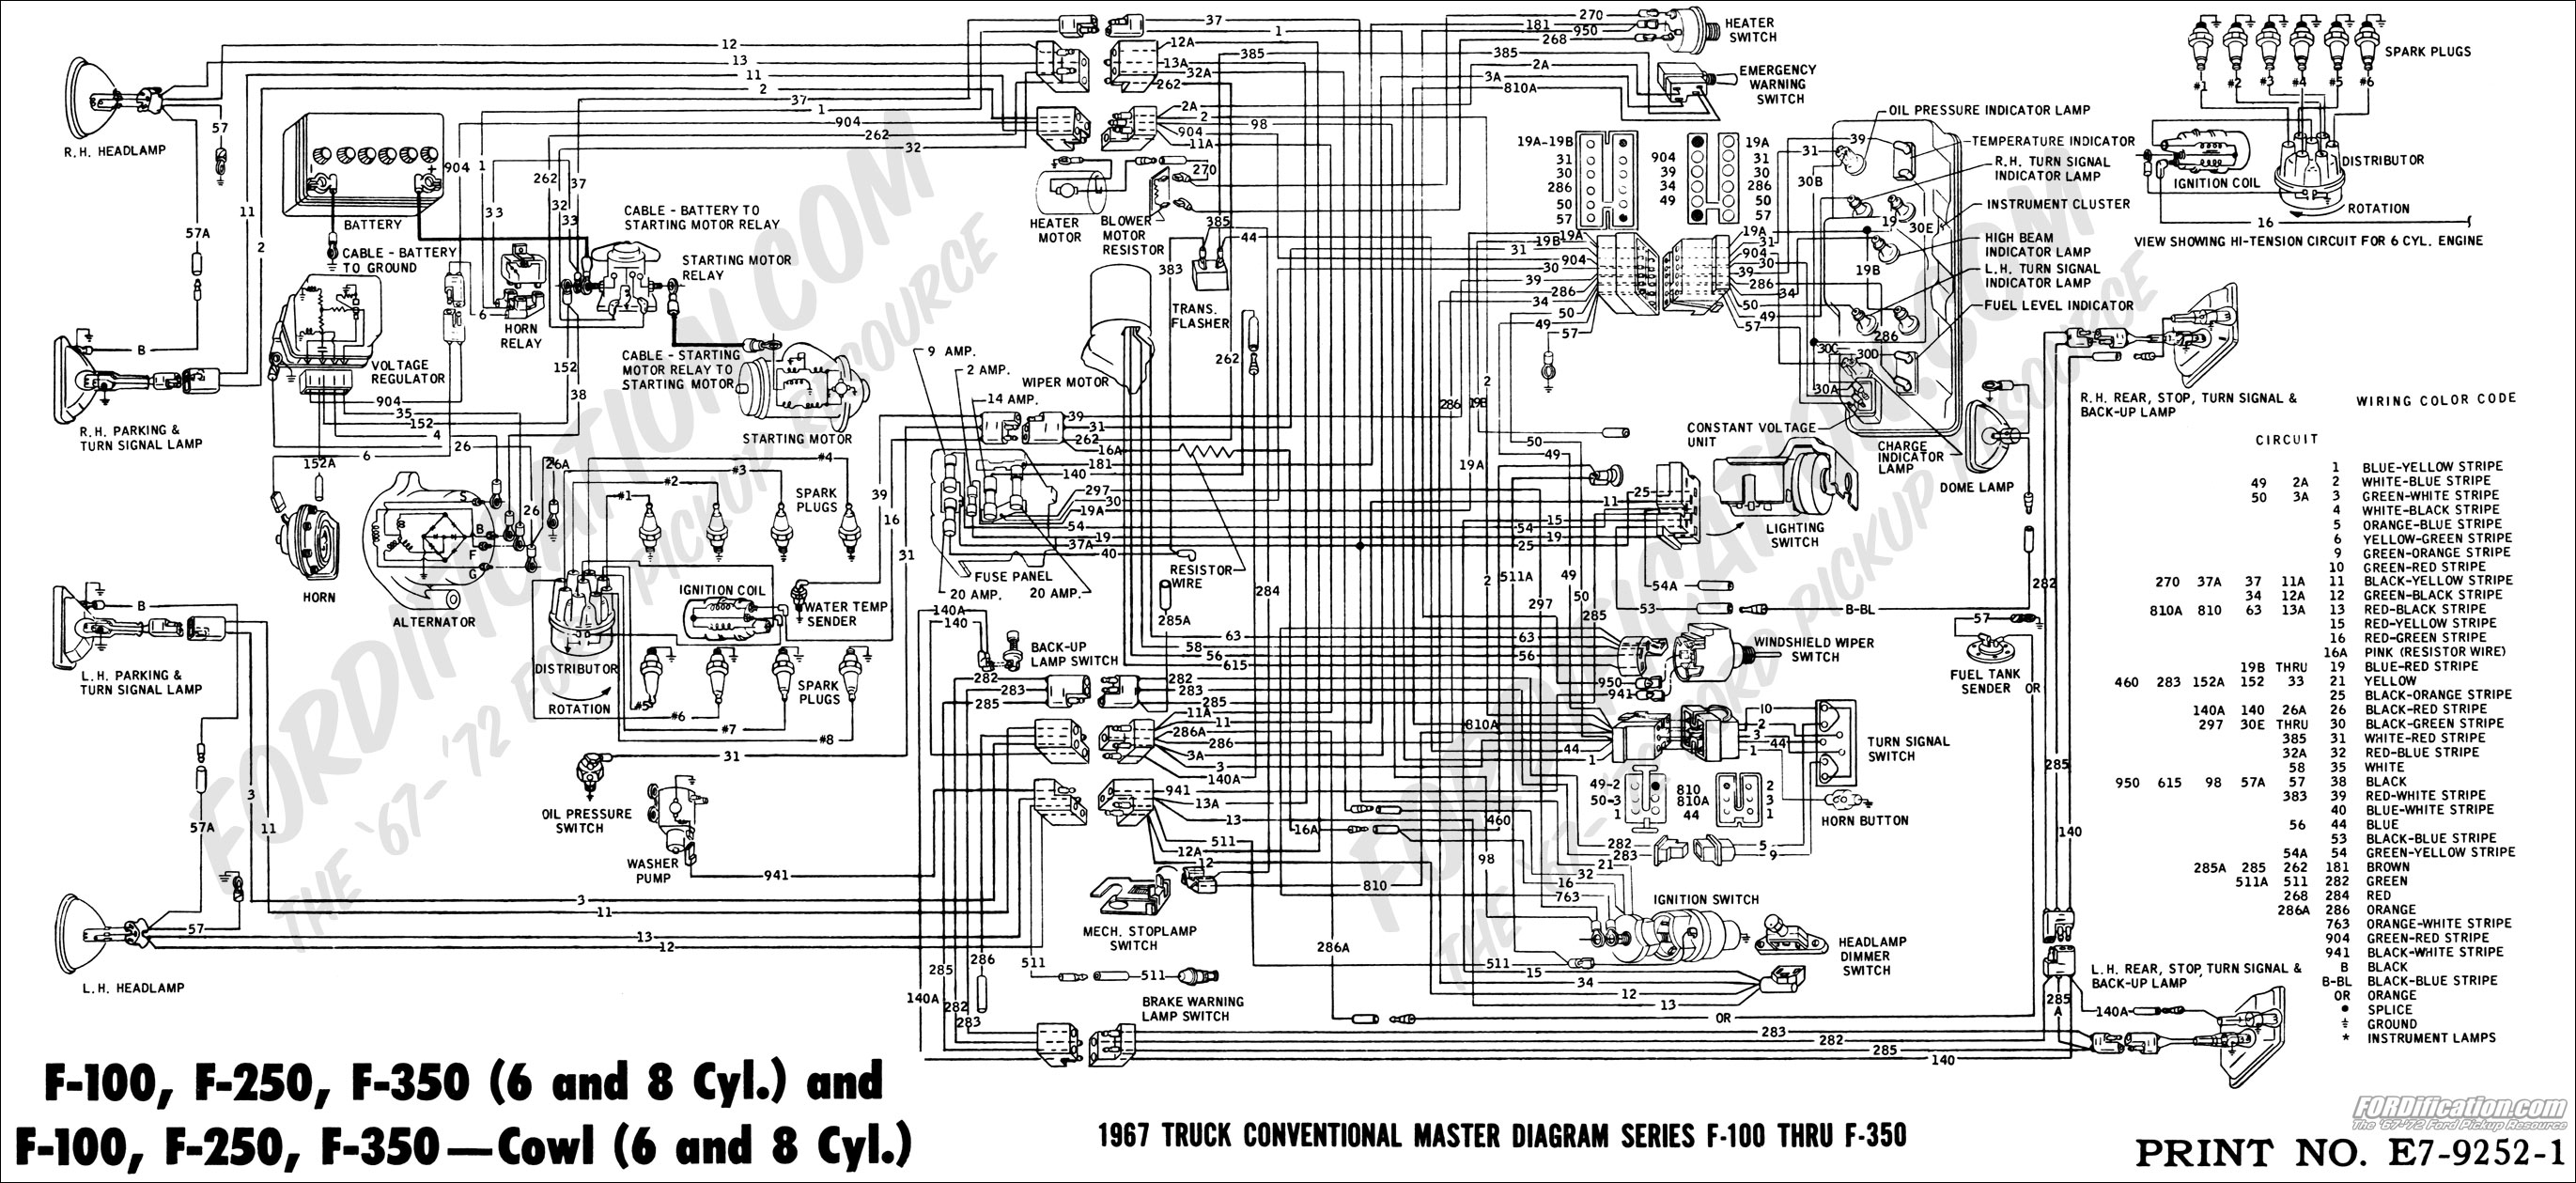 ford diagrams ford image wiring diagram ford truck technical drawings and schematics section h wiring on ford diagrams